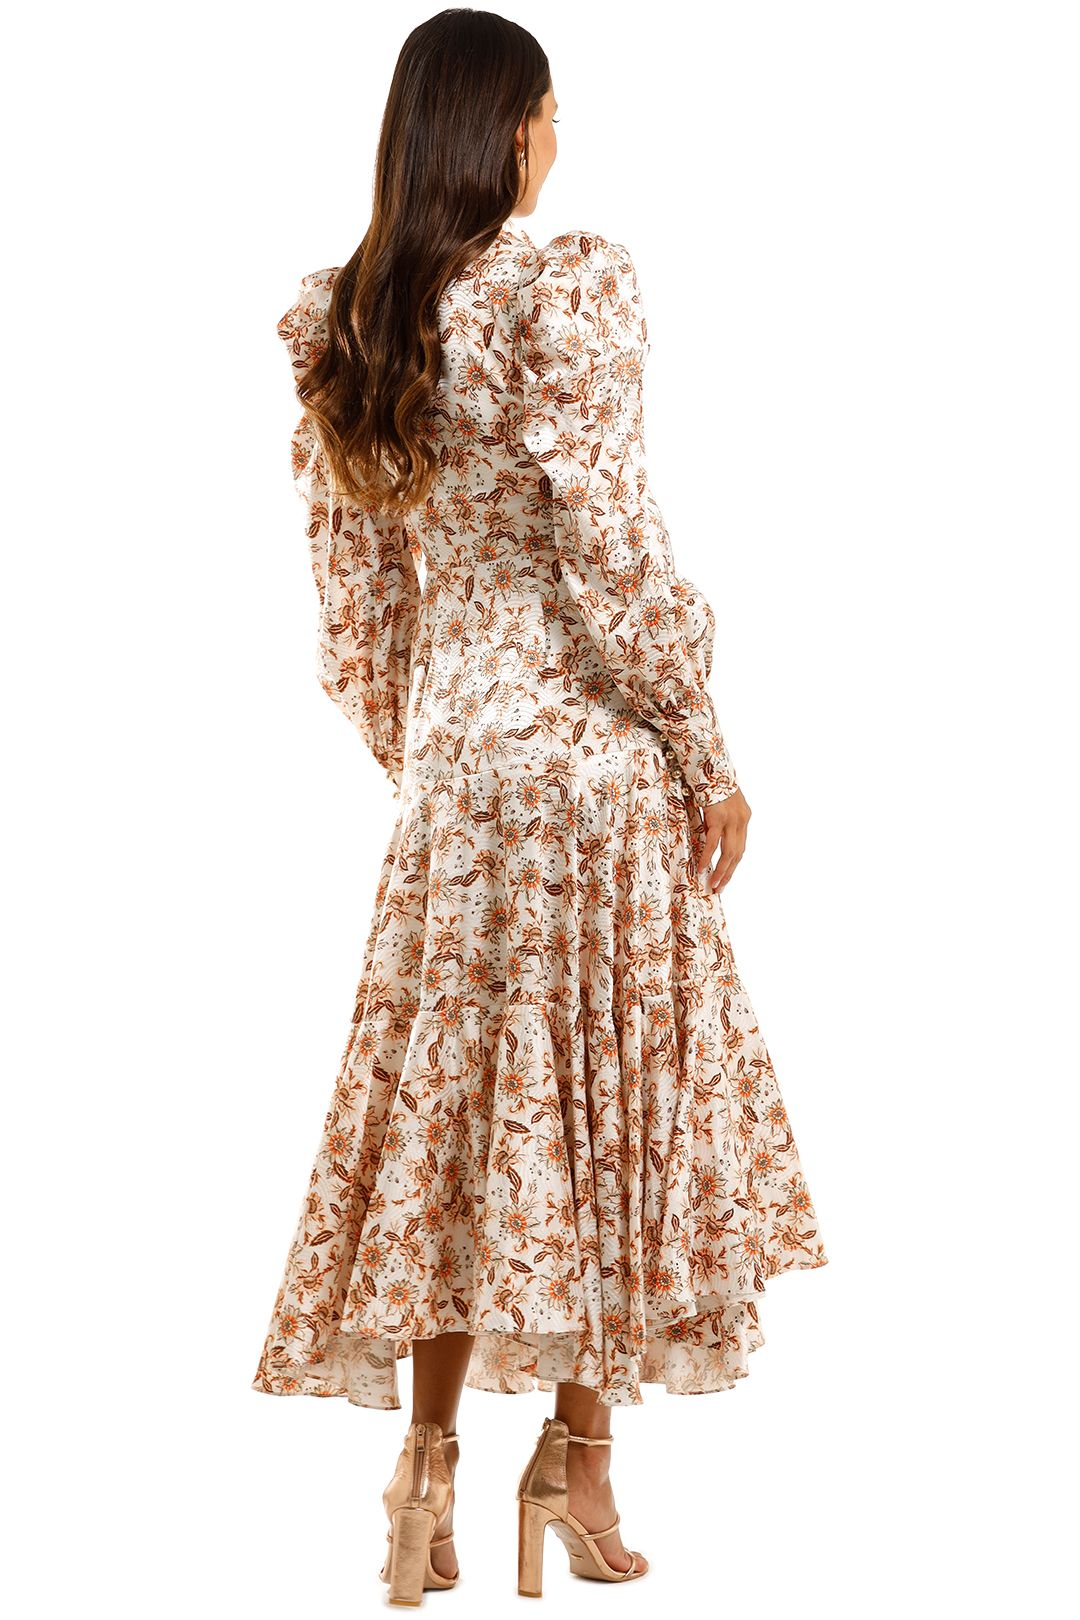 Acler Horrock Long Dress Floral Boho Handkerchief Skirt